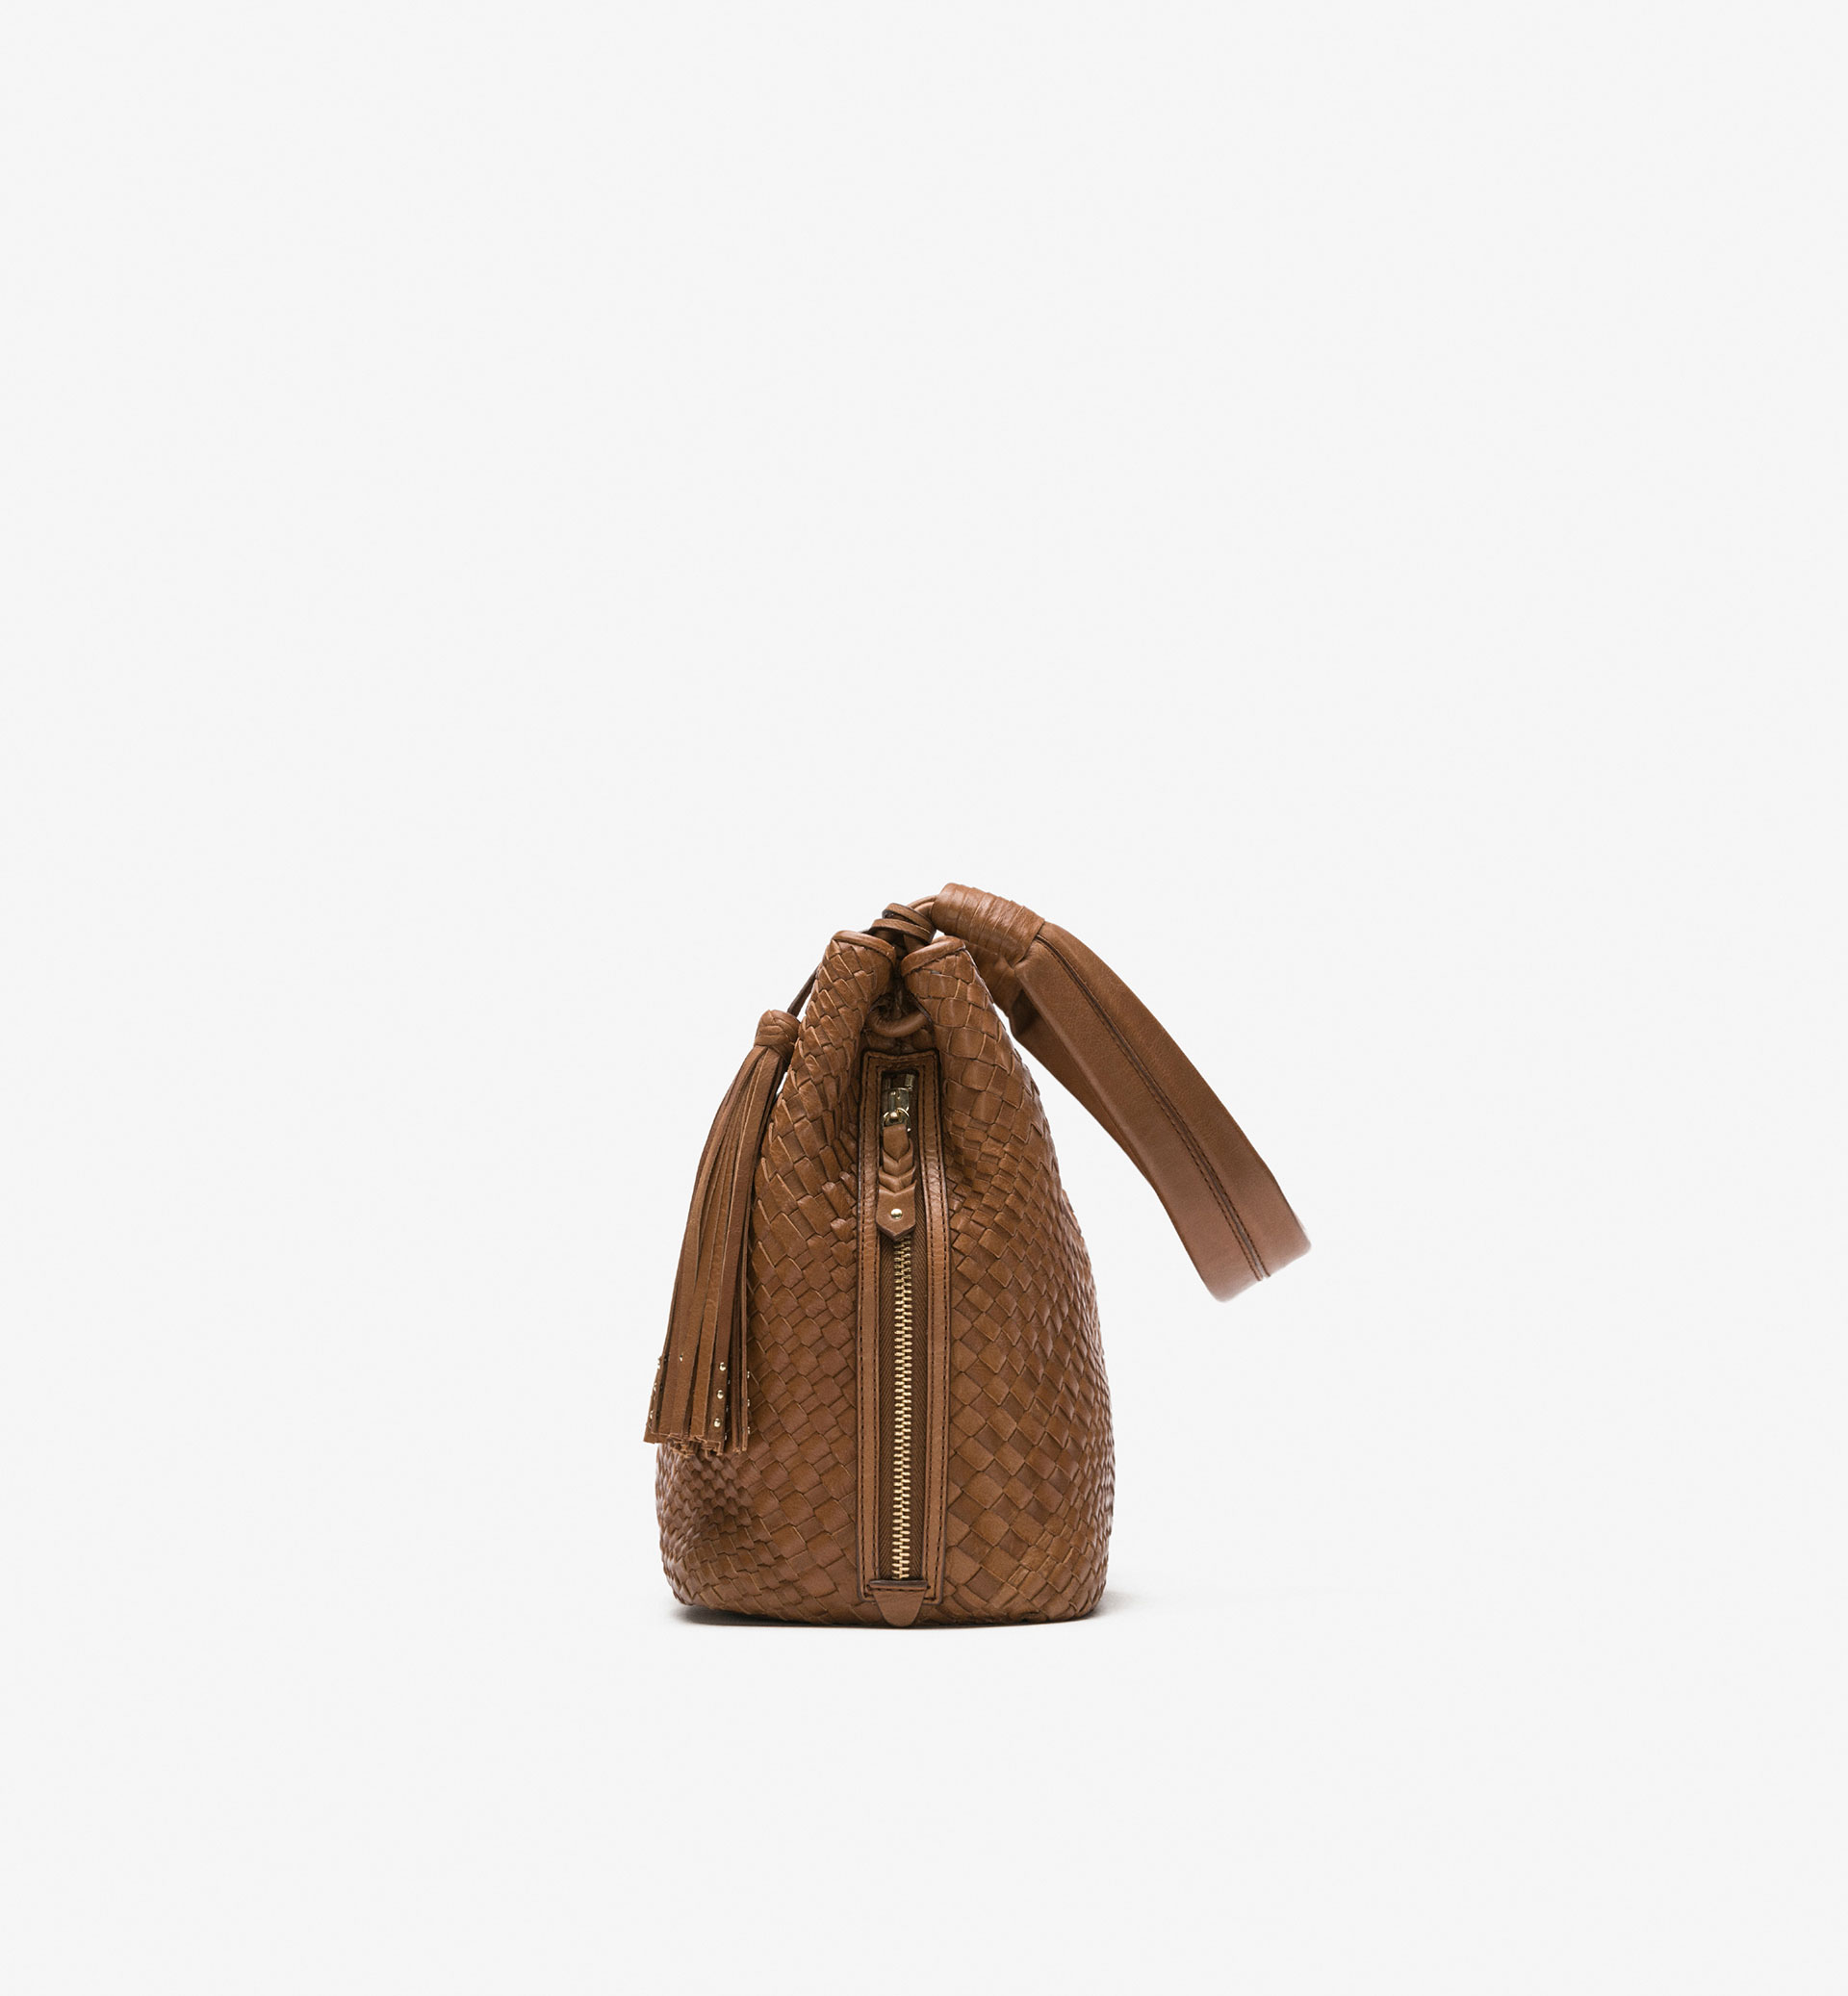 BRAIDED BAG WITH TASSEL DETAIL